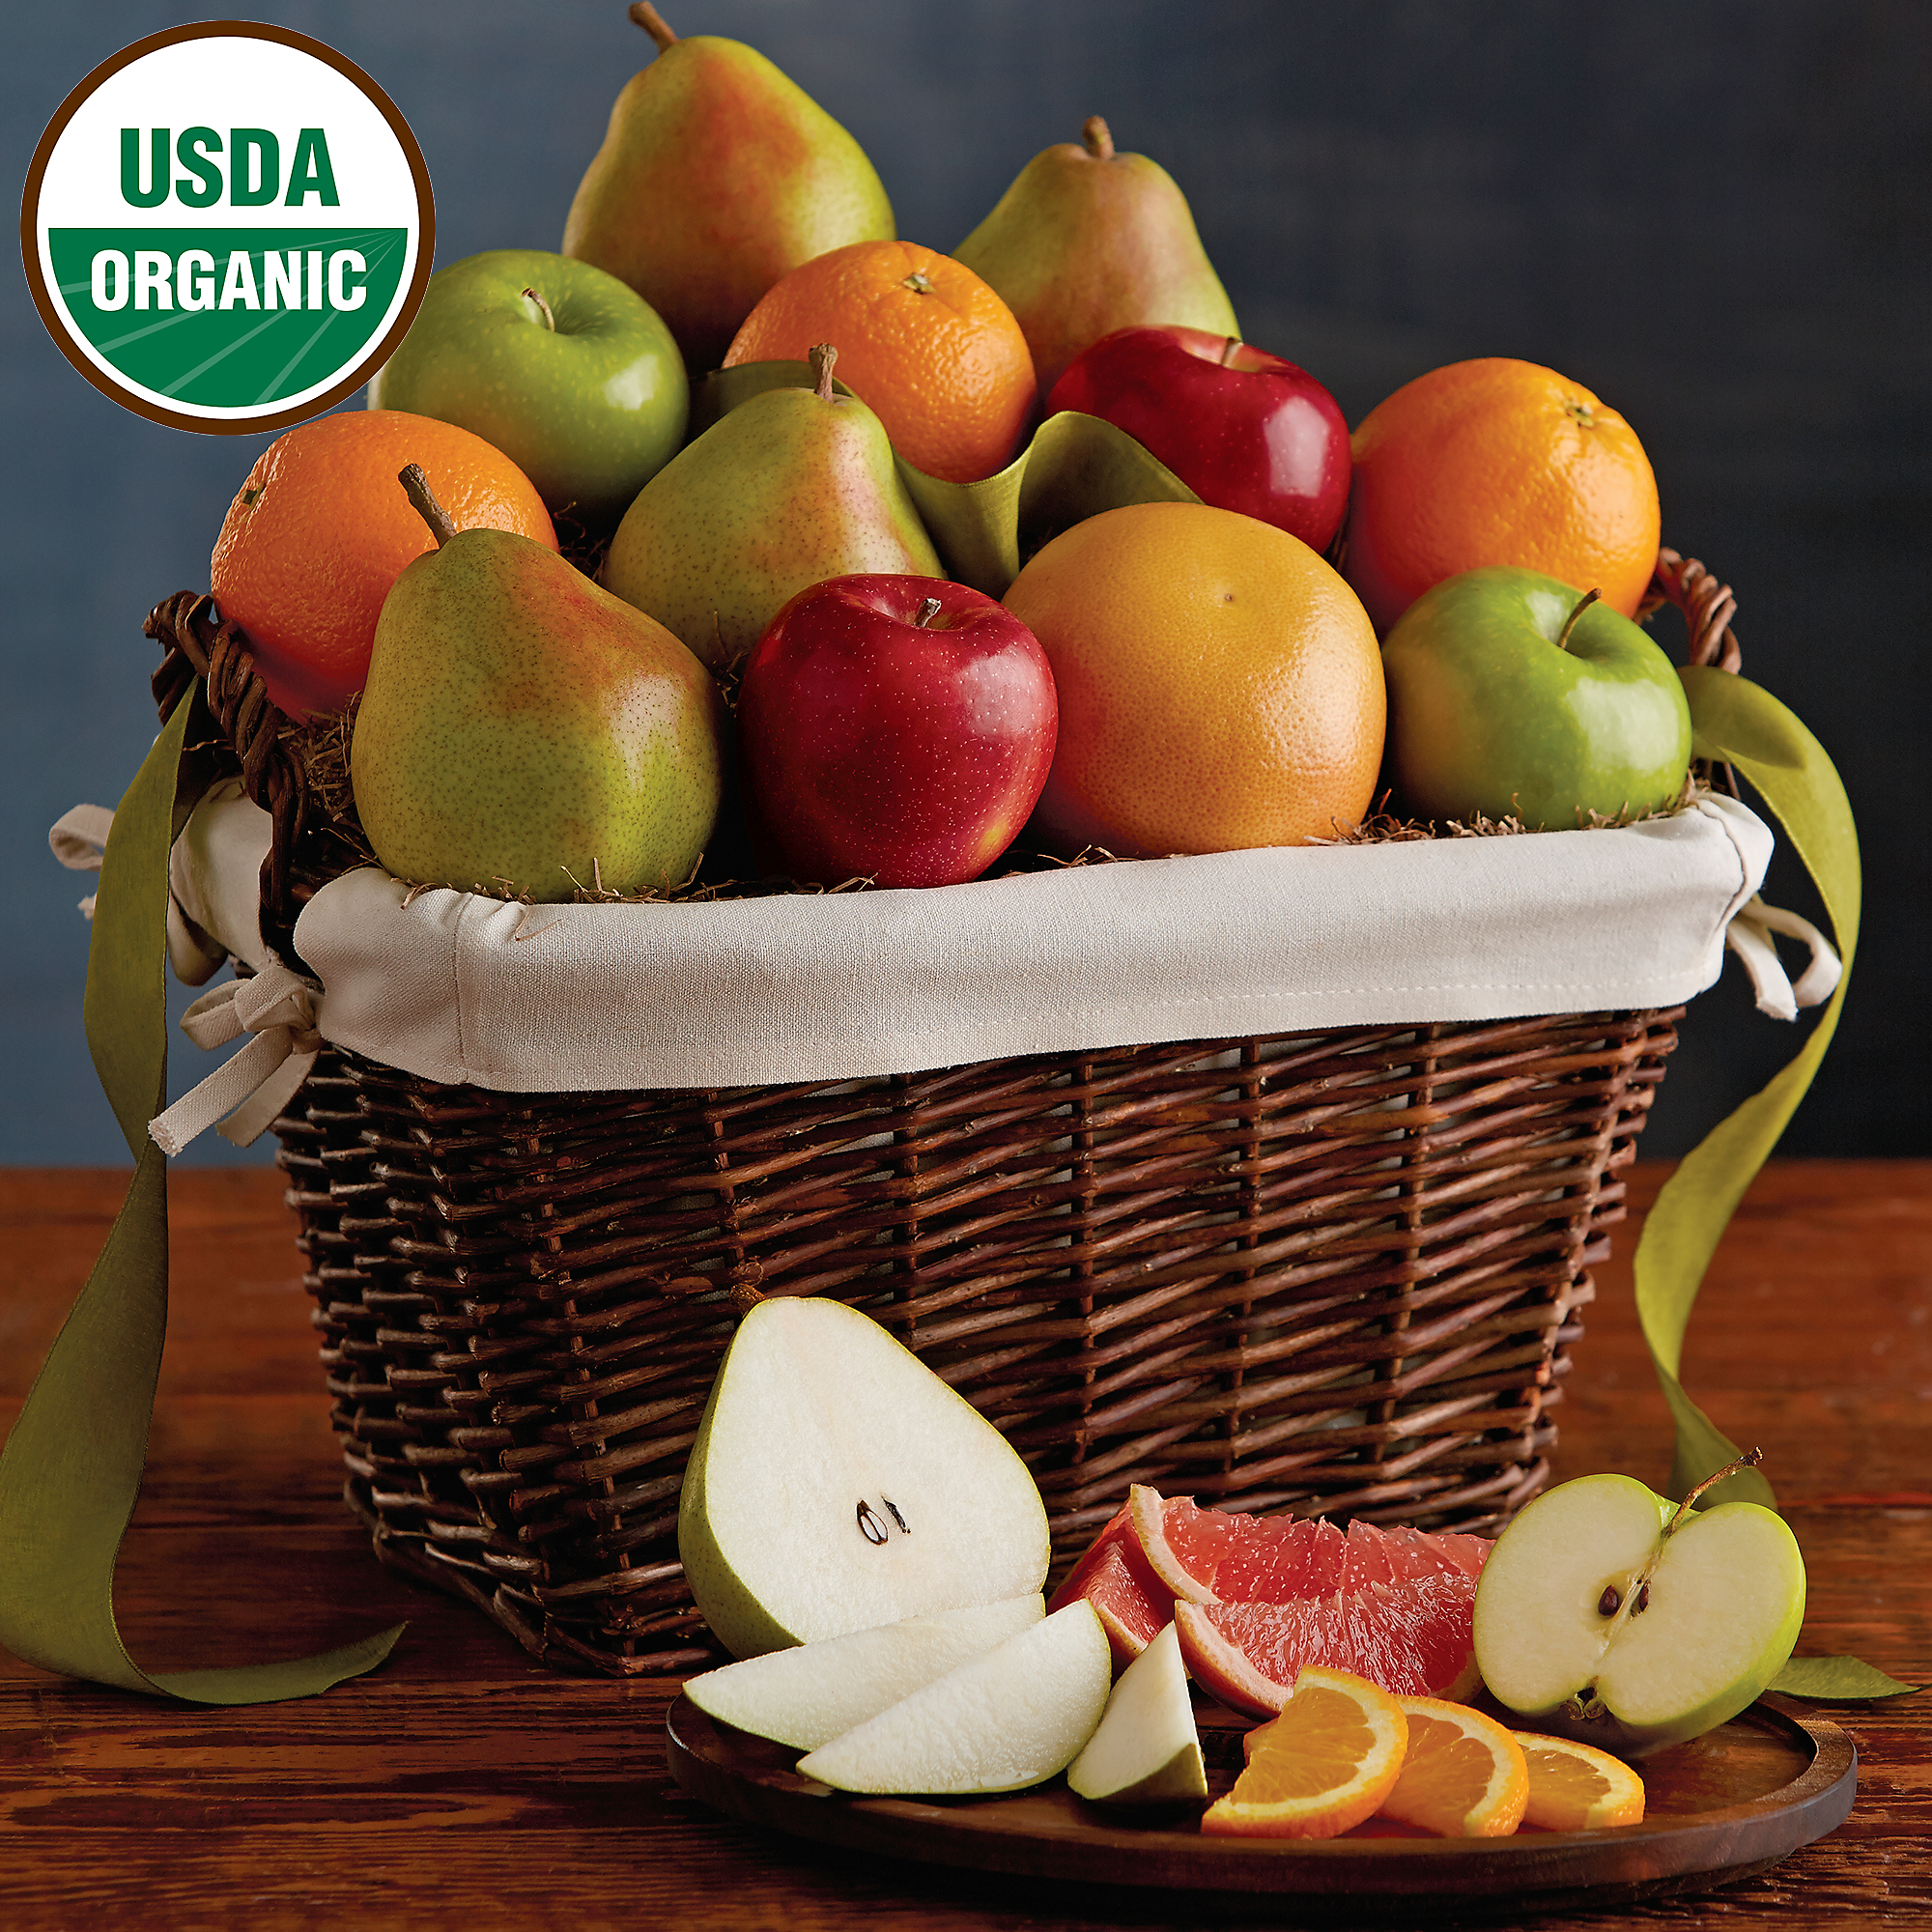 Our fruit baskets are of the very highest quality at Fruit for the Office. Our family has been in the fruit industry for almost years and has experience in sourcing the very finest fruits from British farmers and from across the world, so you can be sure that when sending a basket of fruit from Fruit for the office, you are sending quality fresh produce guaranteed to impress on delivery.